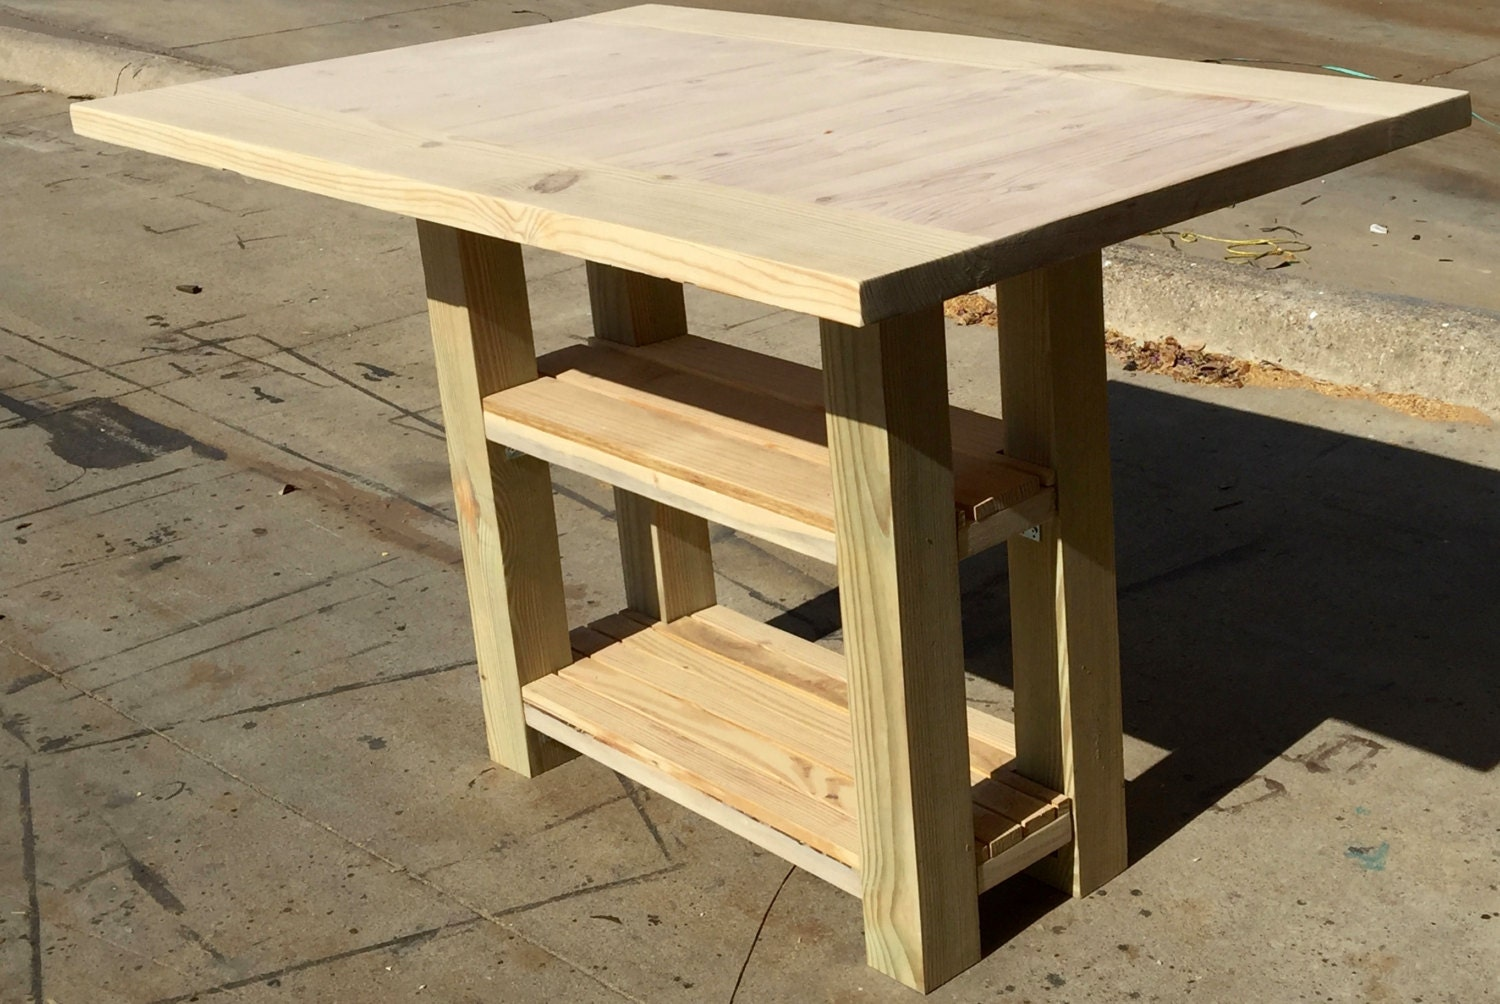 Diy small kitchen island with storage and matching bench - Small kitchen island with storage ...